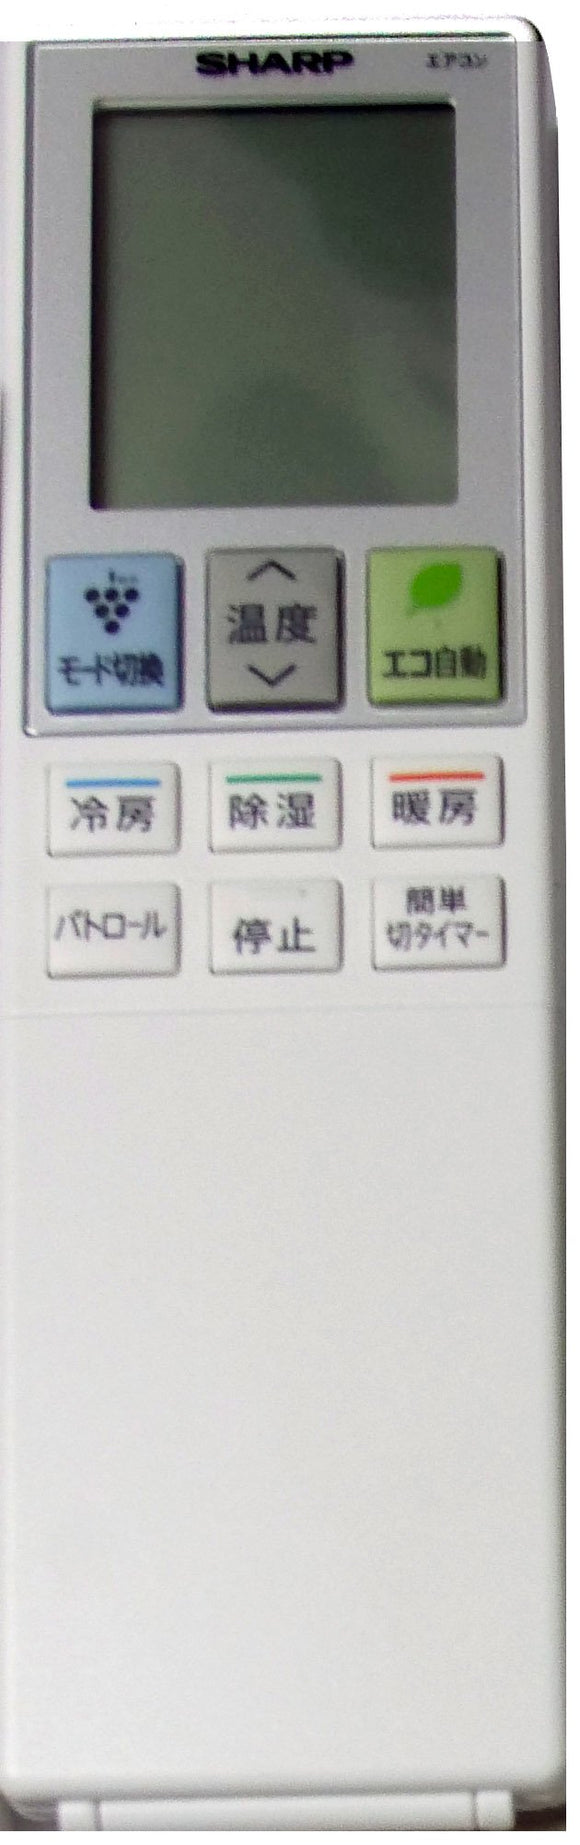 Sharp Airconditioner Remote